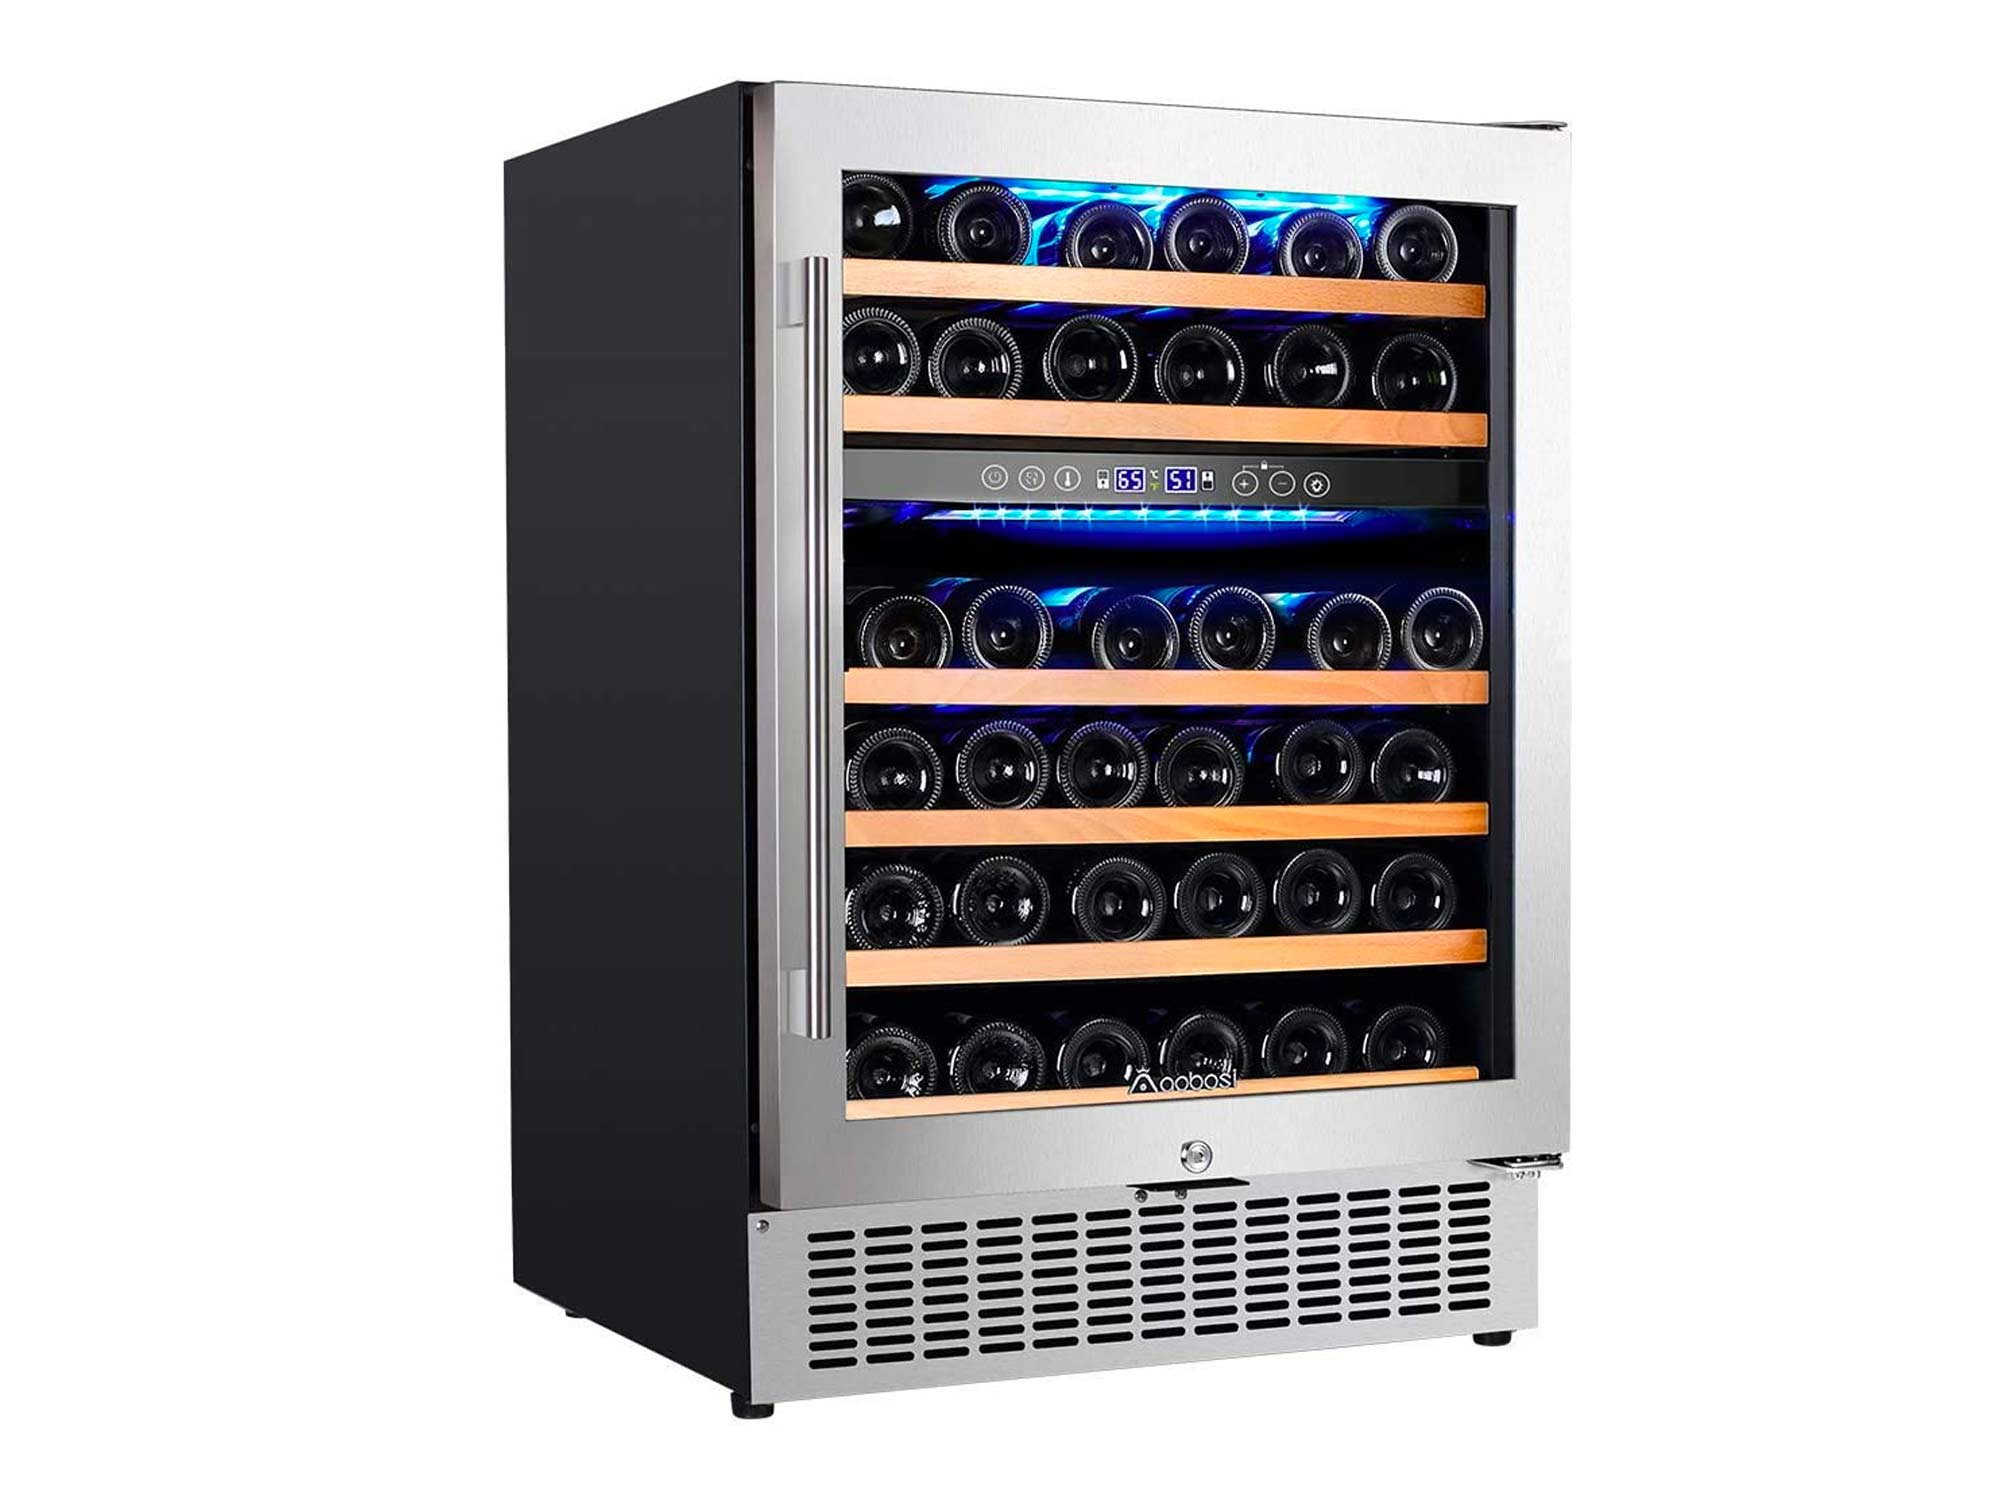 Aobosi 24 Inch Dual Zone Wine Cooler 46 Bottle Freestanding and Built in Wine Refrigerator with Advanced Cooling System, Quiet Operation, Blue Interior Light